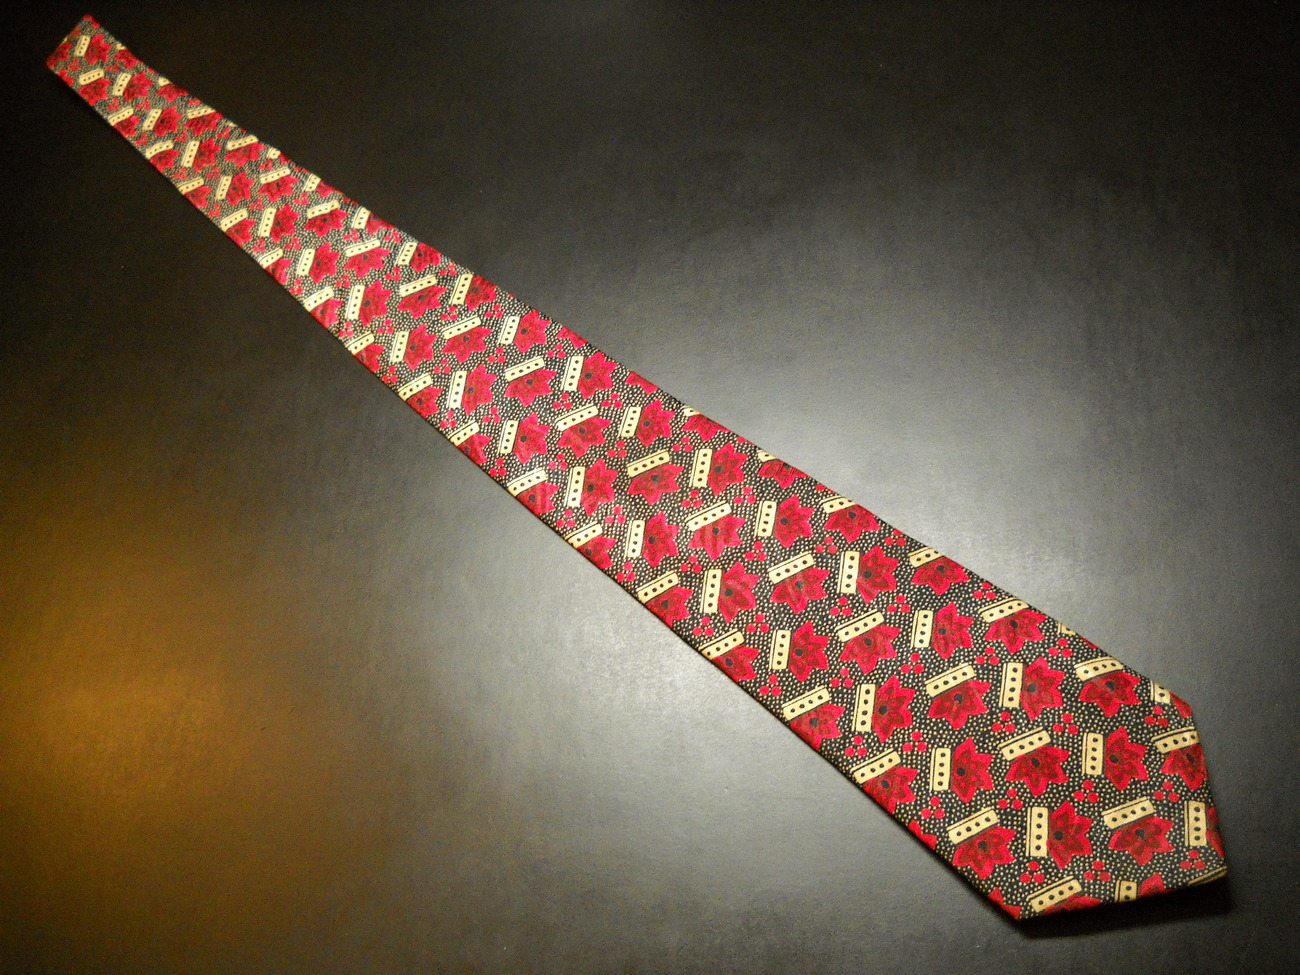 Guy Laroche Paris Neck Tie Repeating Designs in Reds Golds Black Imported Silk